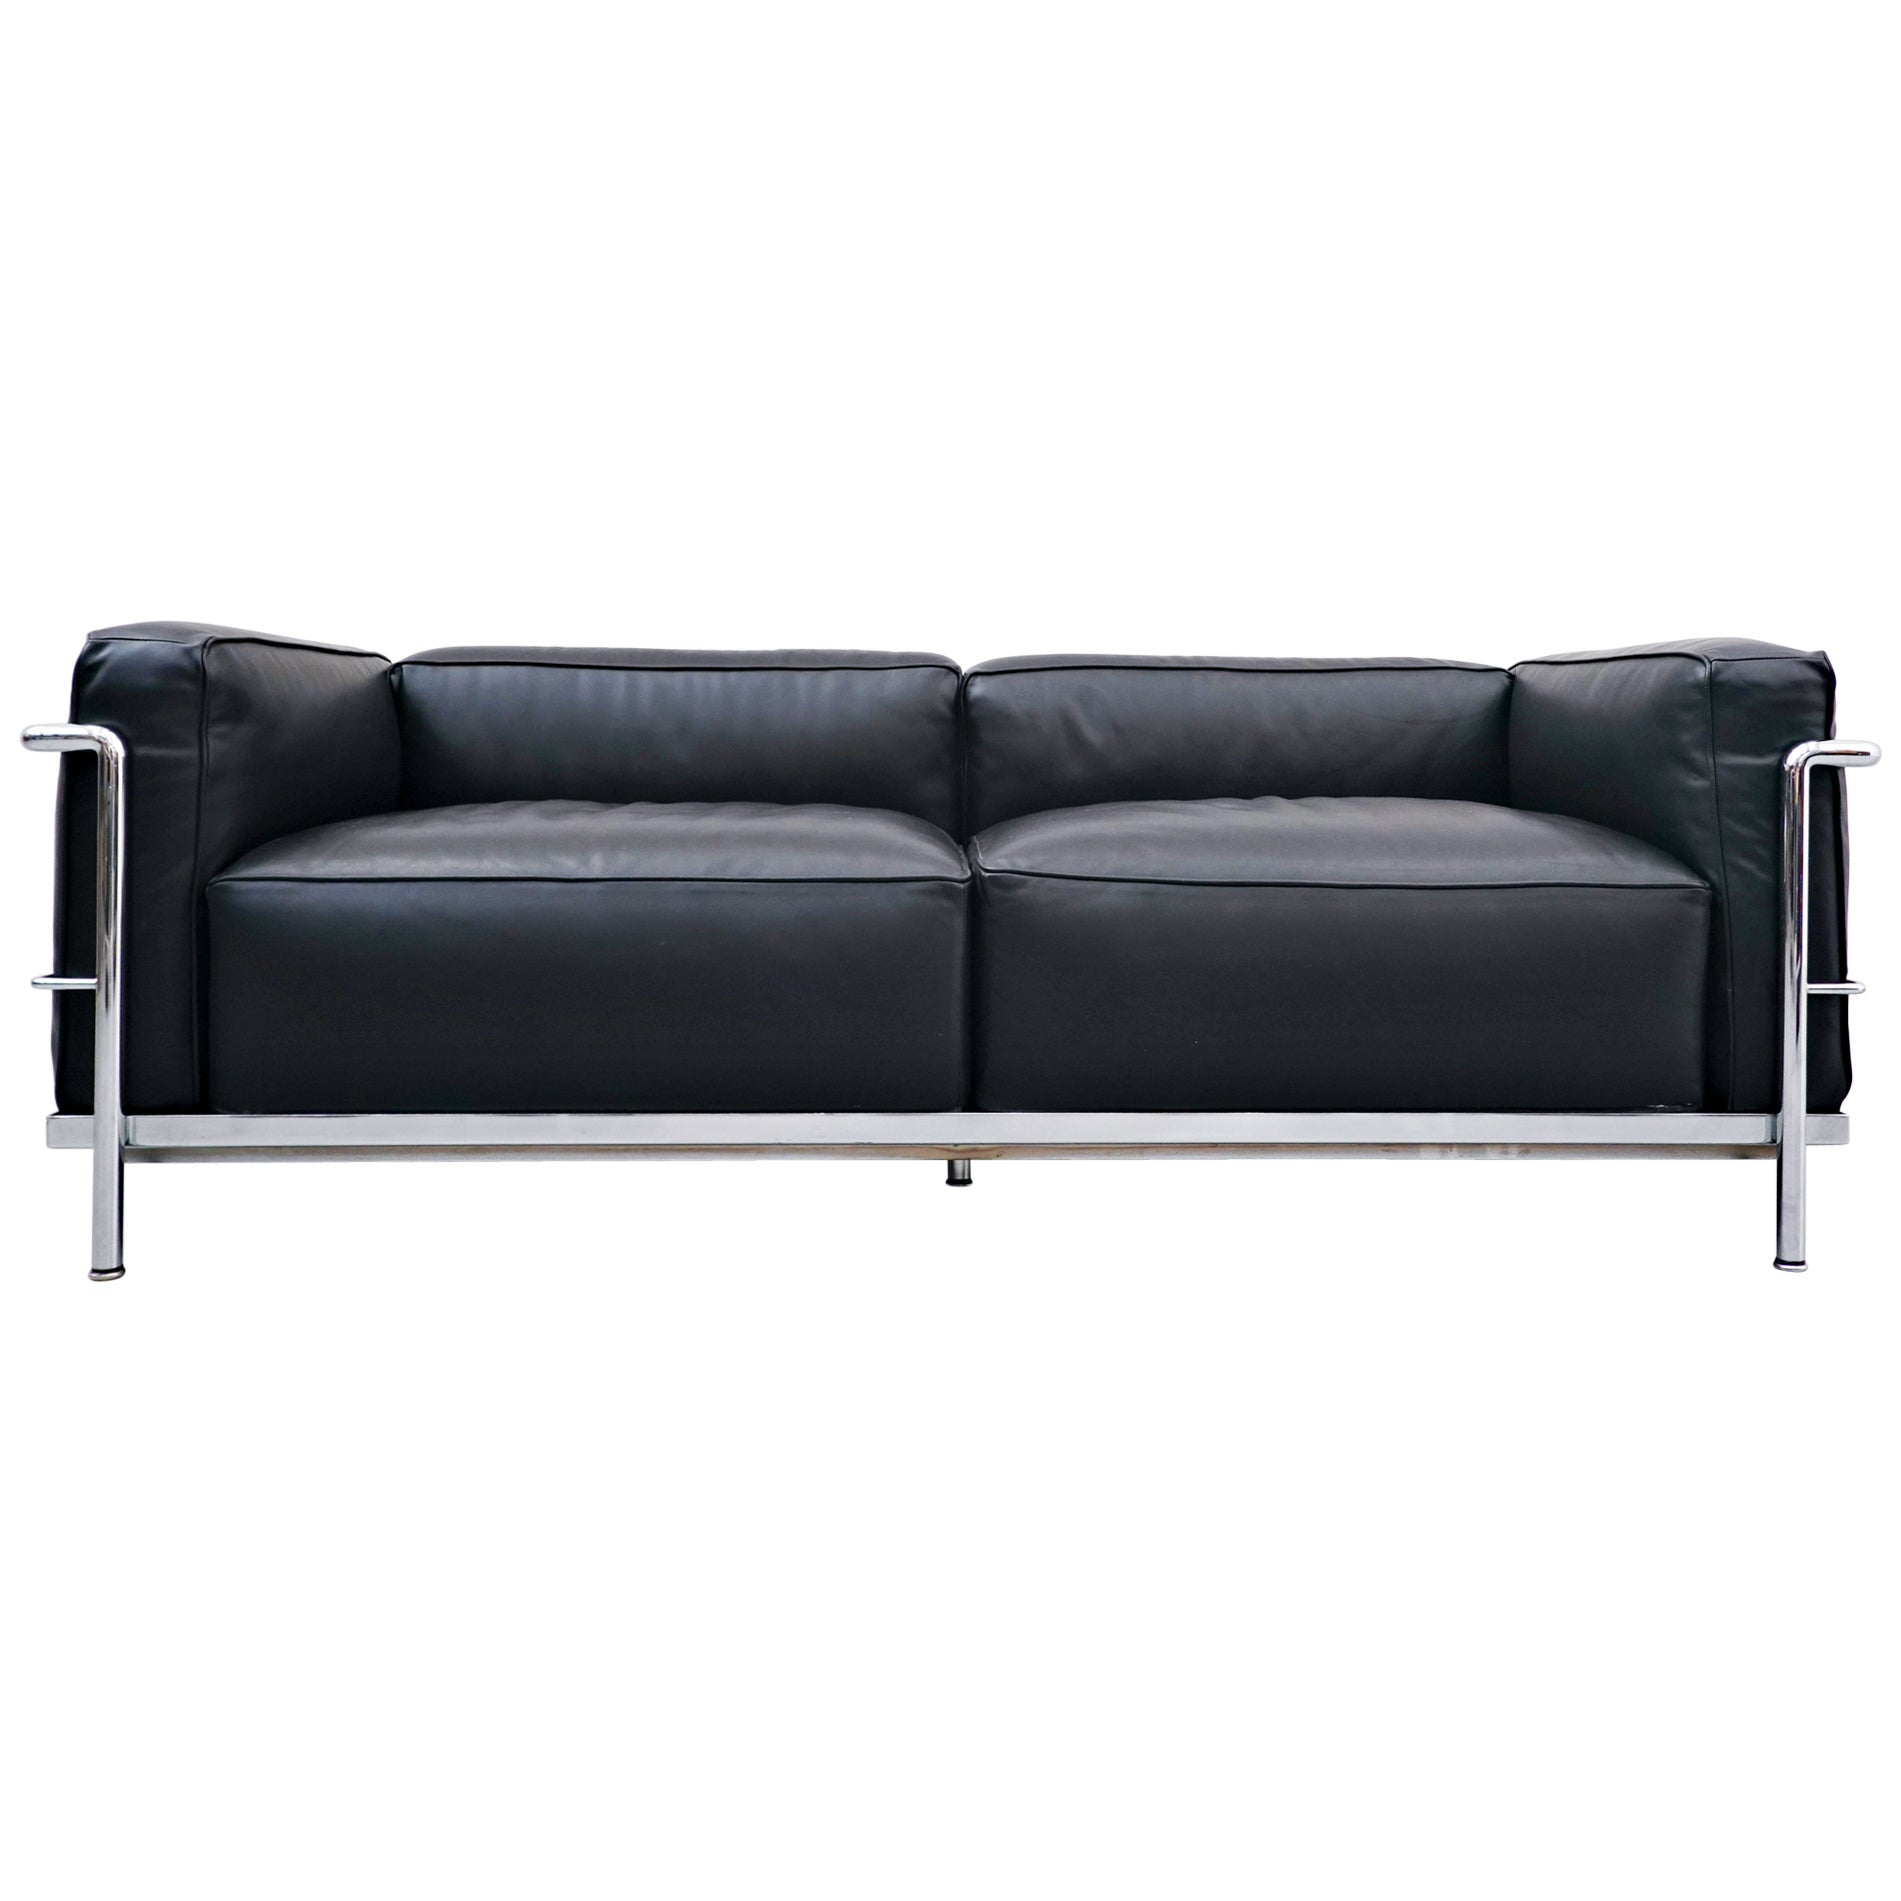 LC3 Sofa, Le Grand Confort, Le Corbusier for Cassina